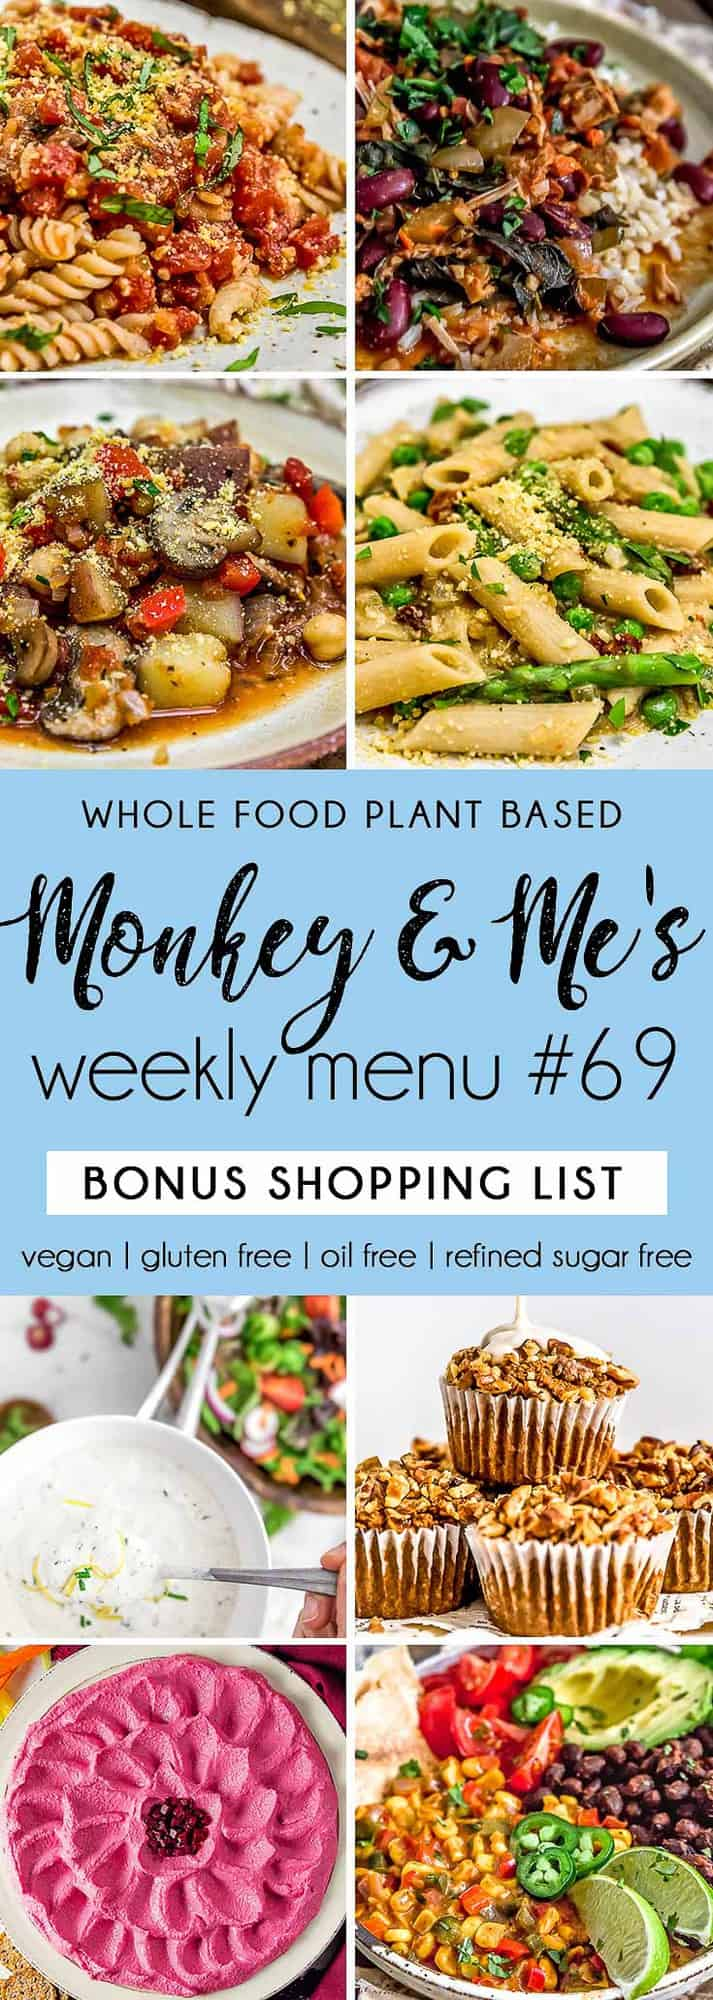 Monkey and Me's Menu 69 featuring 8 recipes